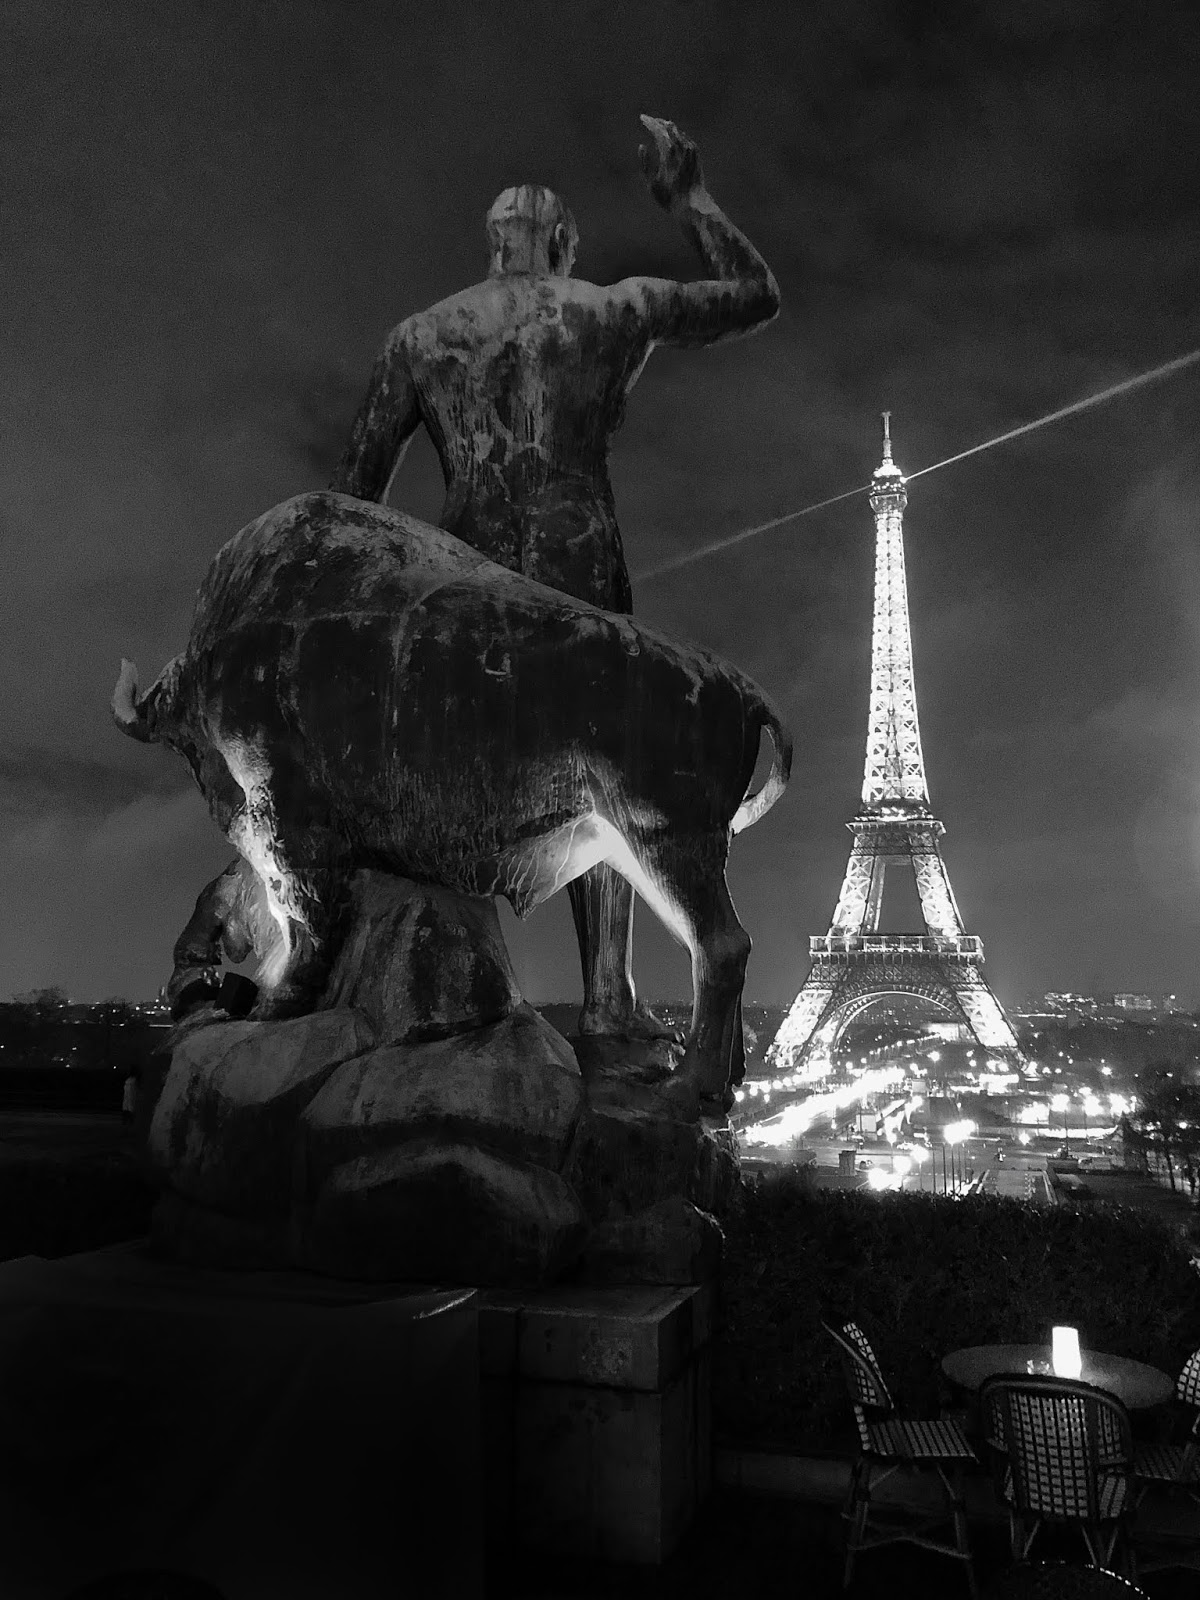 paris café de l'homme, restaurant café de l'homme, paris city guide, Paris by night, Eiffel Tower by night